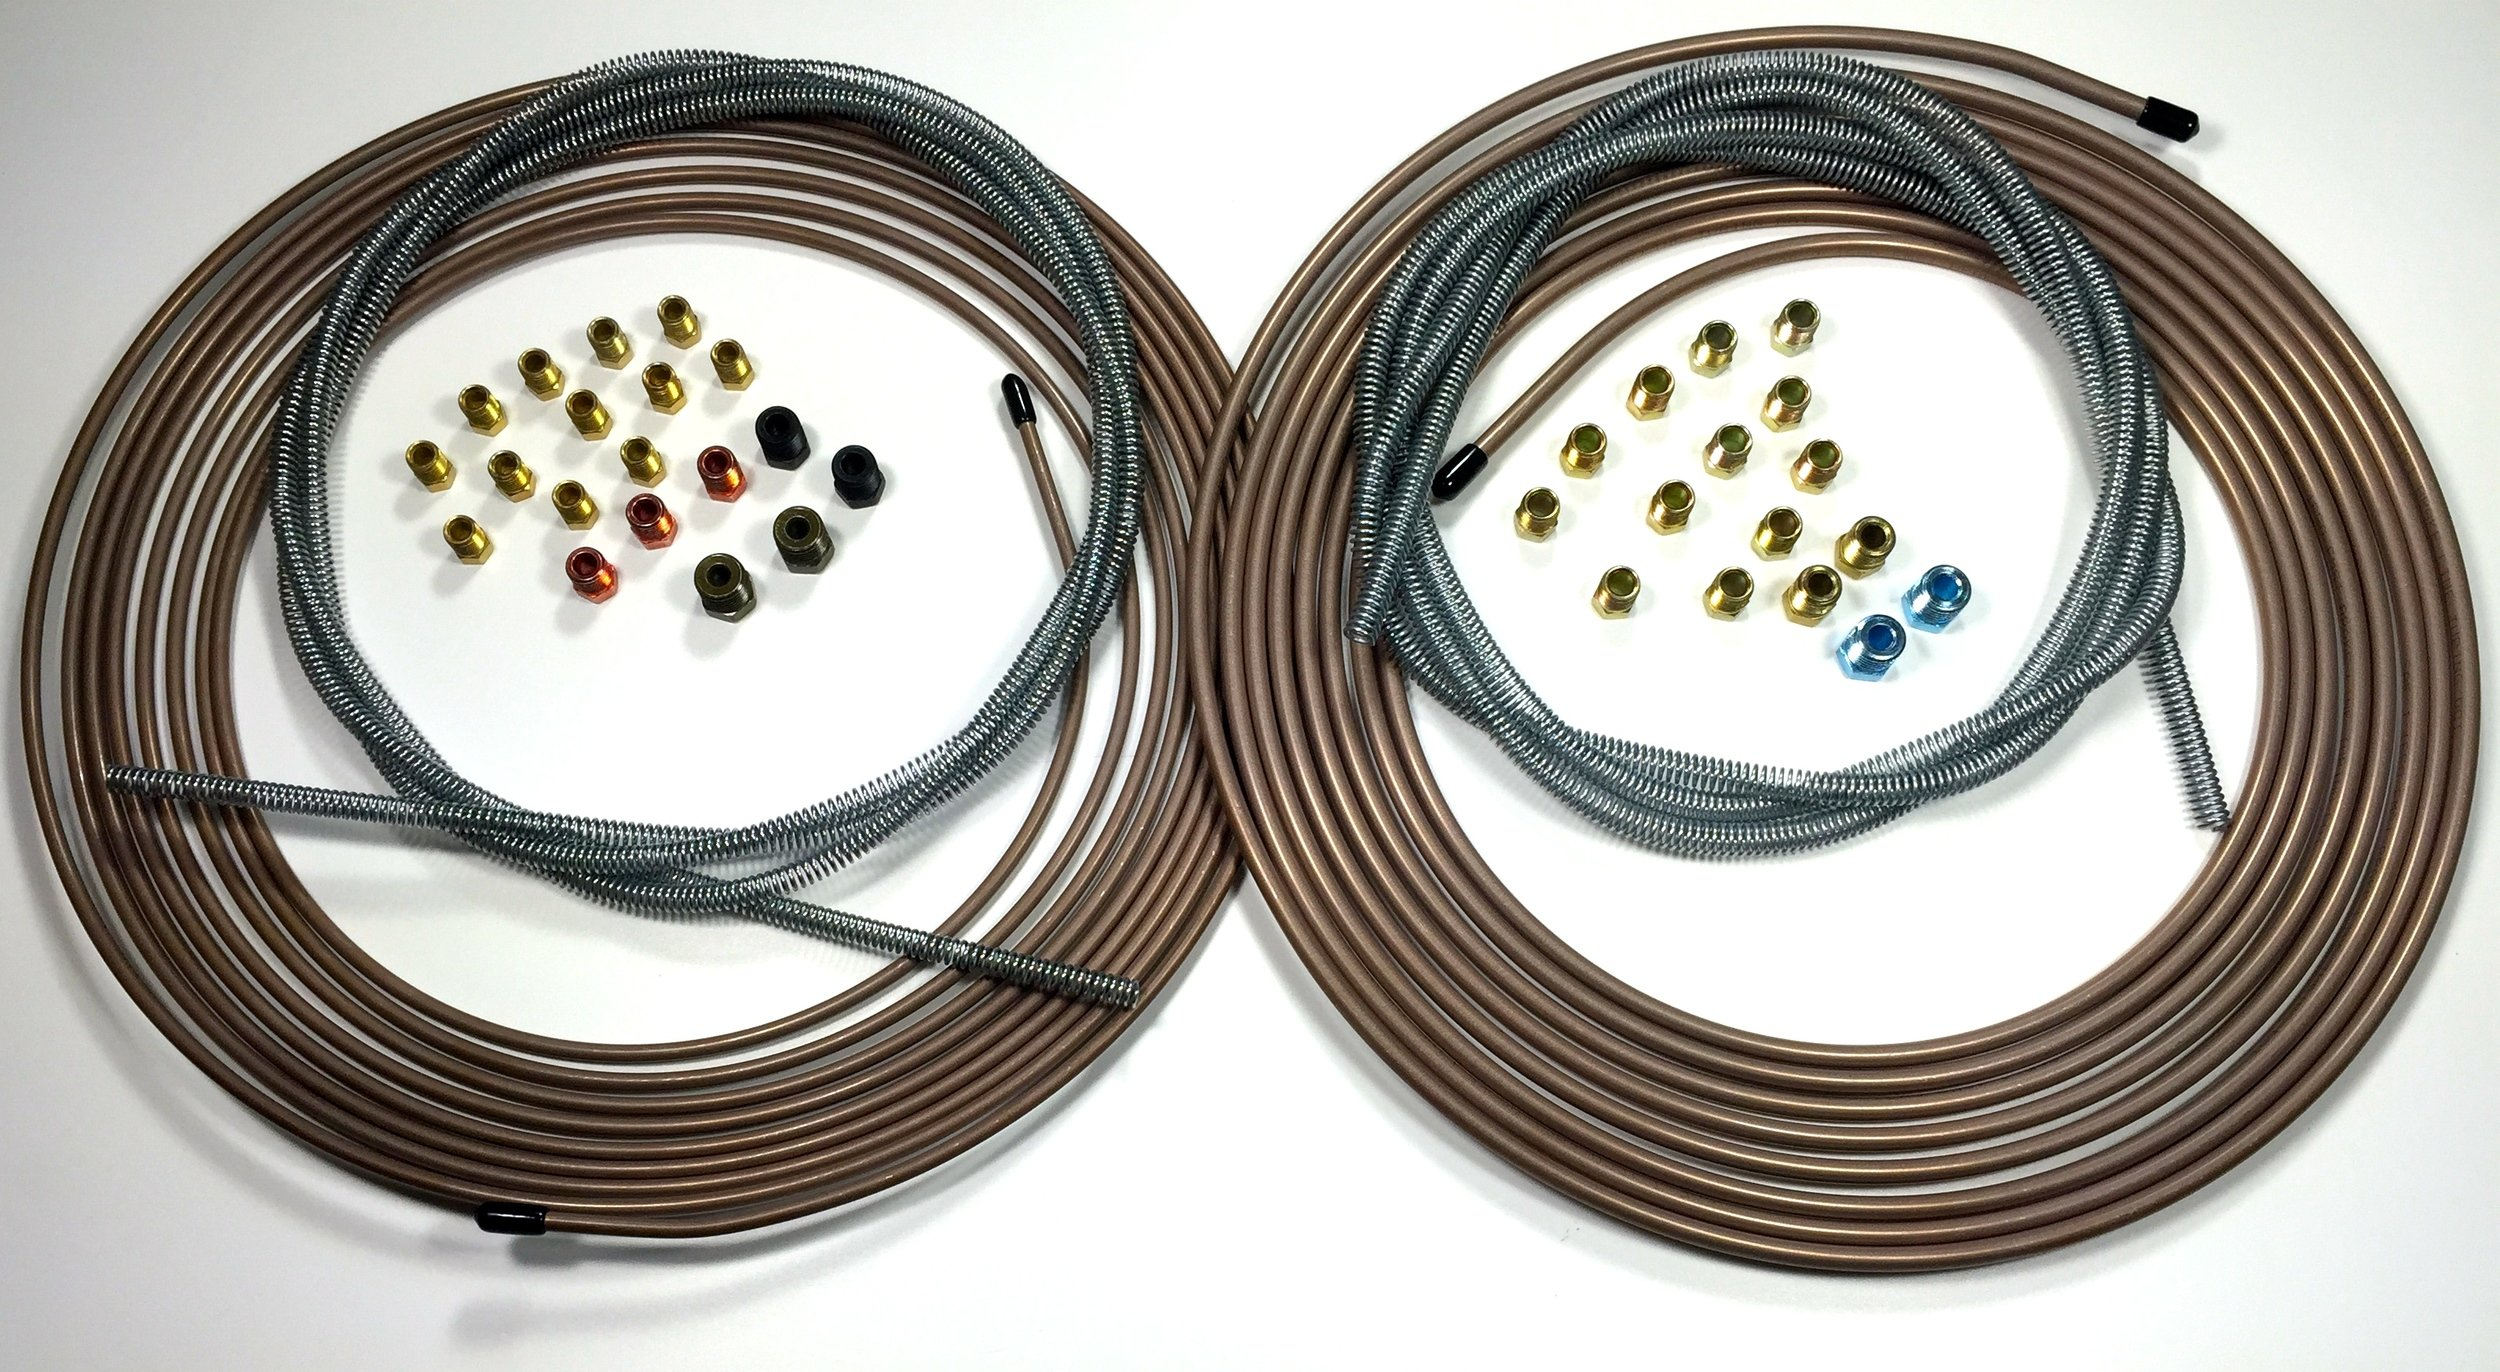 Complete Copper Nickel Brake Line Kit. 25 ft of 1/4 and 3/16 Rolls/Coils w Fittings /8 ft of 3/16'' & 1/4'' Armor